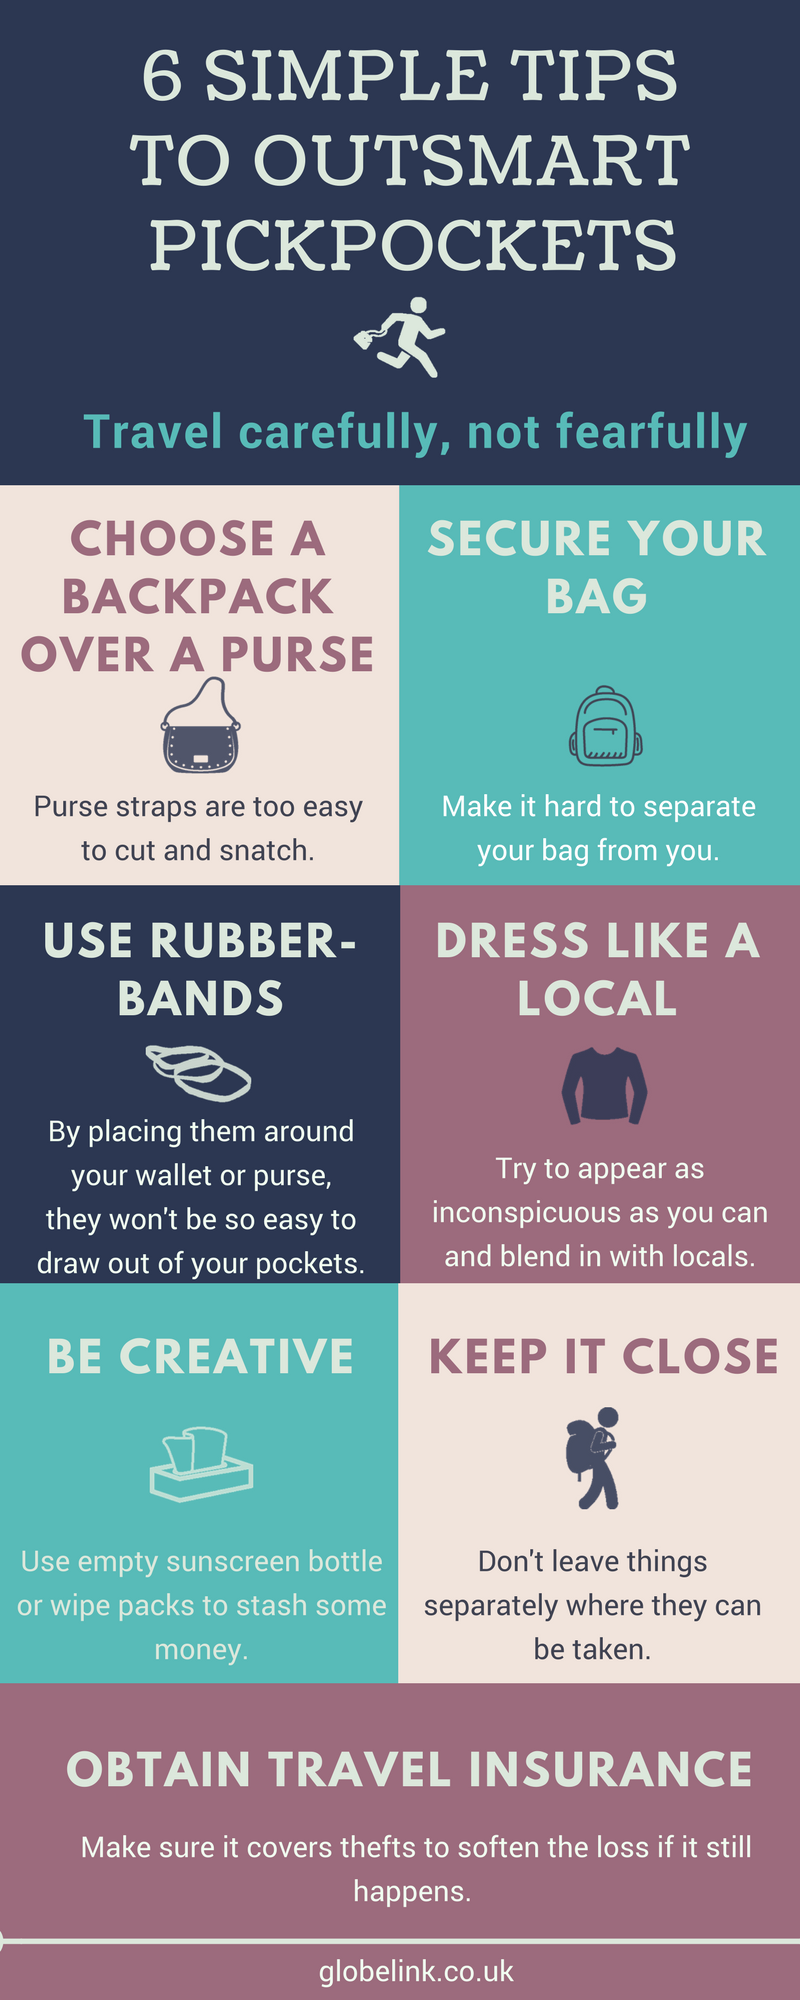 Top Tips to Outsmart Pickpockets & Keep Your Camera Safe ...